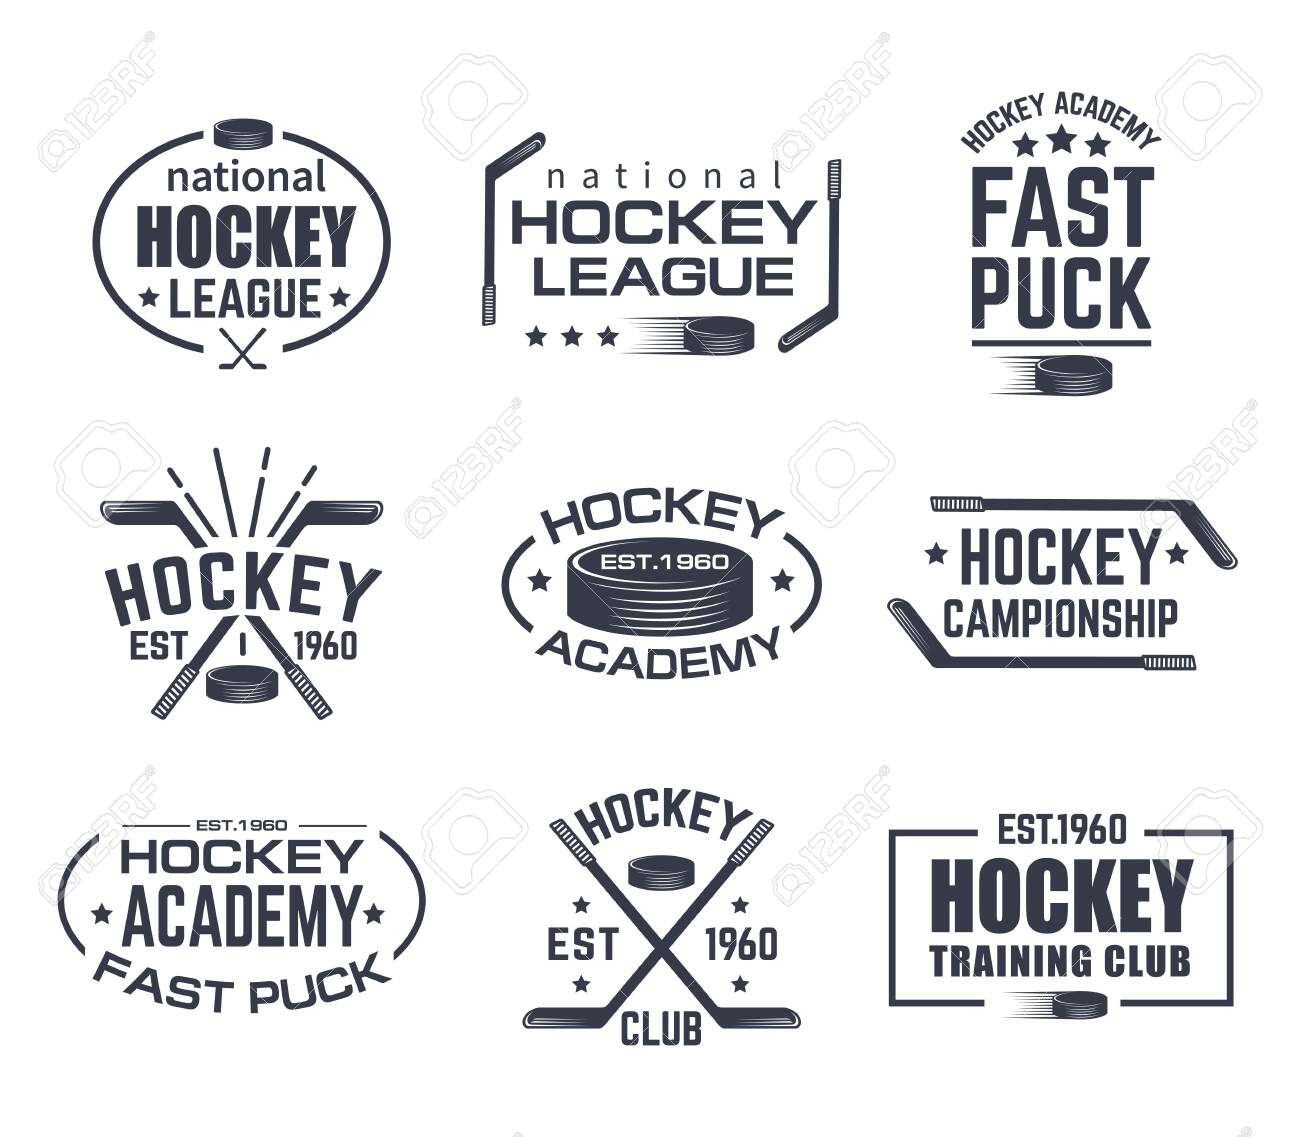 Set of isolated hockey logo with stick and puck. Vintage signs with stars for winter sport. Tournament or training club emblem, national league sign. Branding for clothing or game advertising theme - 121634081